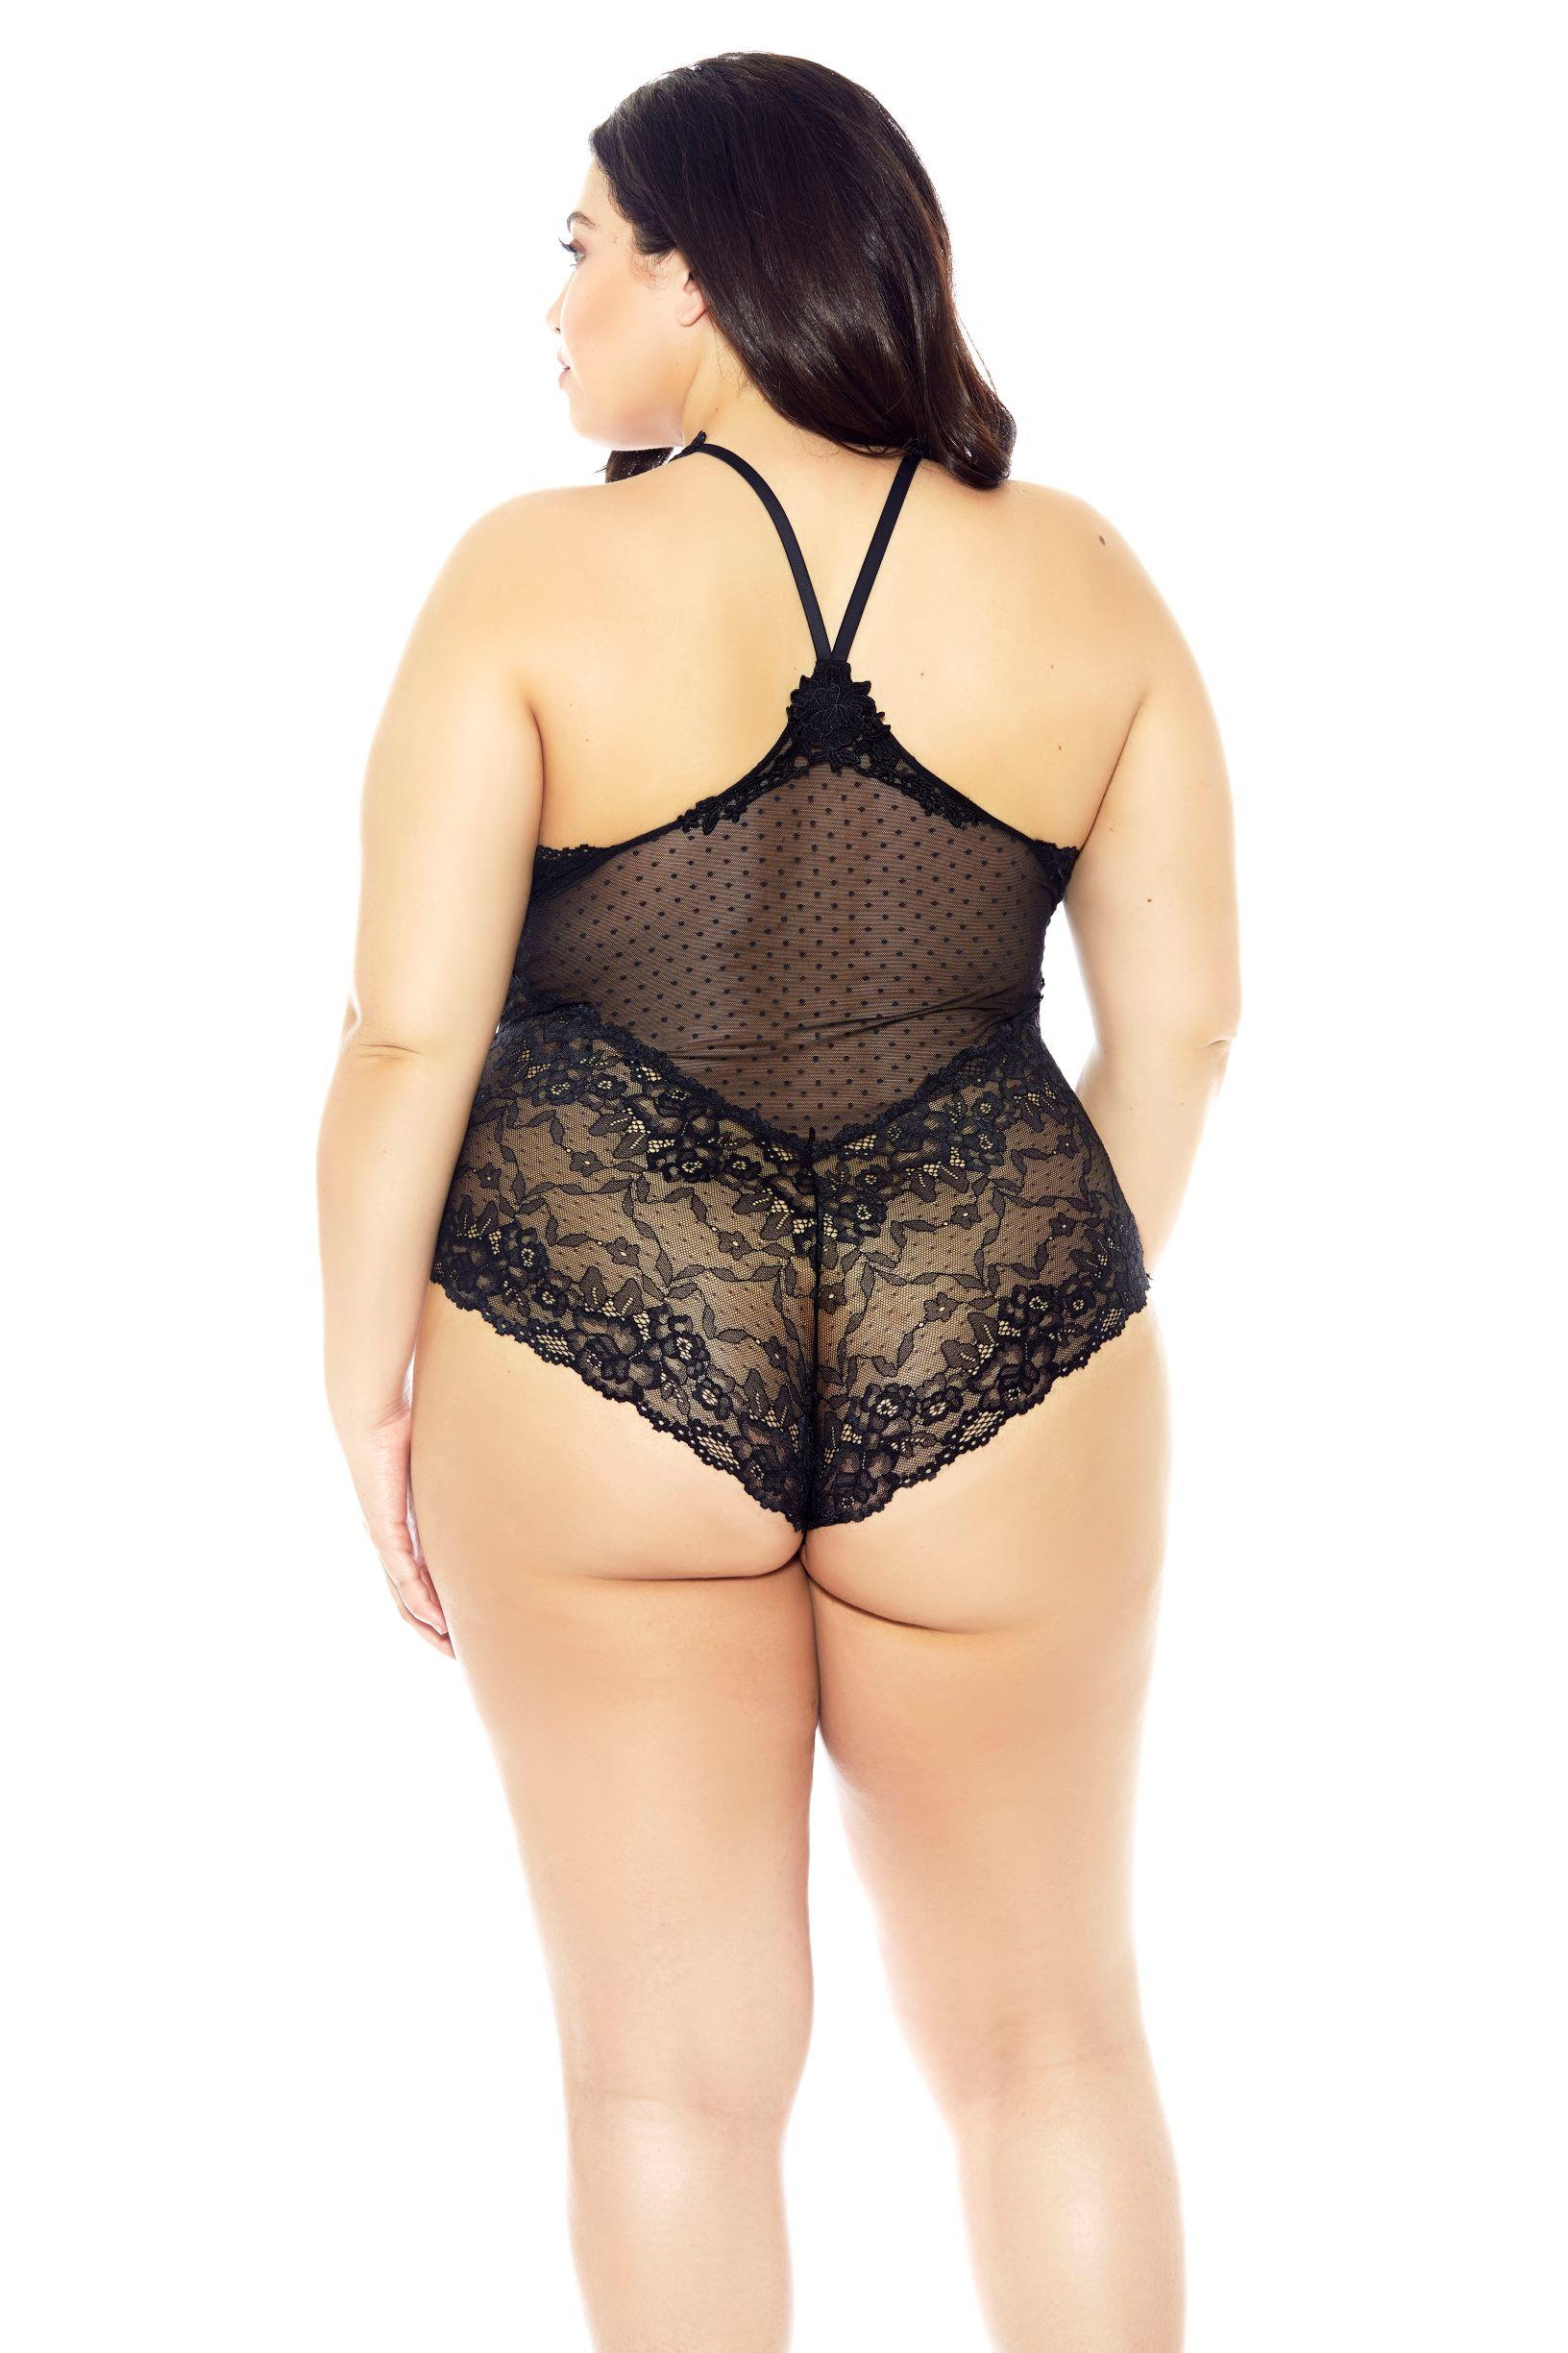 Black Lace Halterneck Teddy rear view